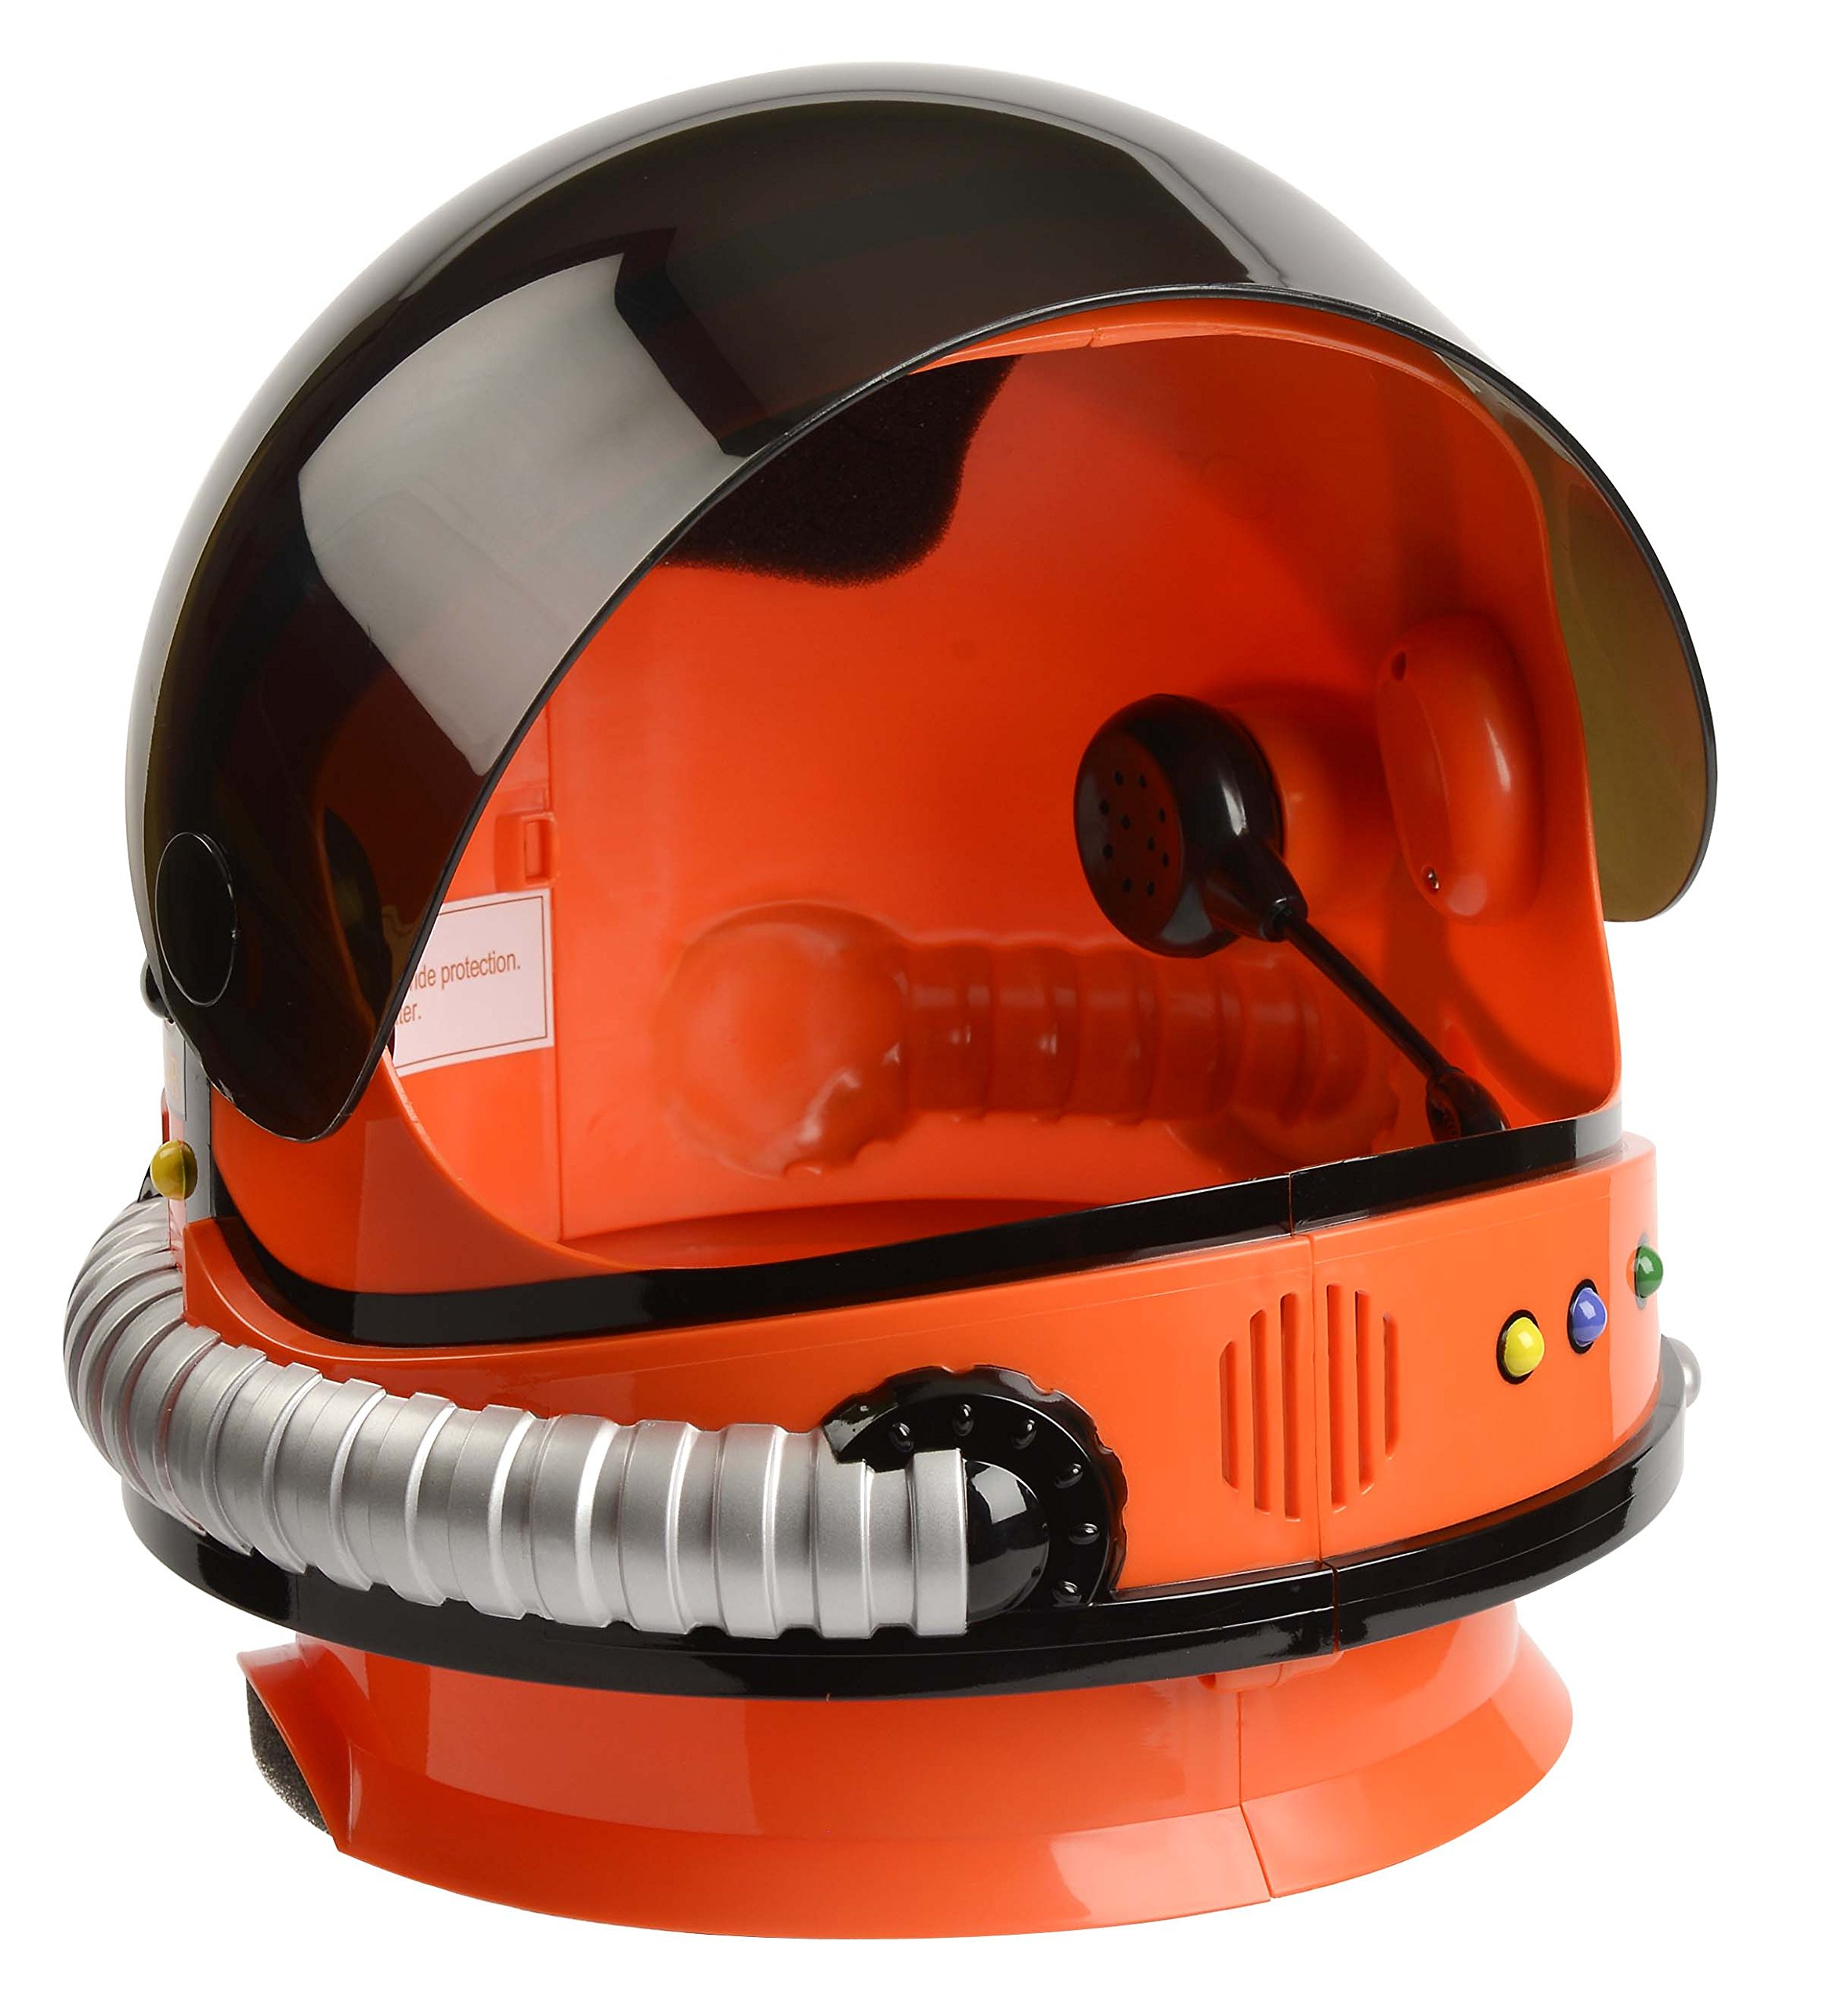 Aeromax Jr. Astronaut Helmet with Sounds and Retractable Visor, Orange by Aeromax